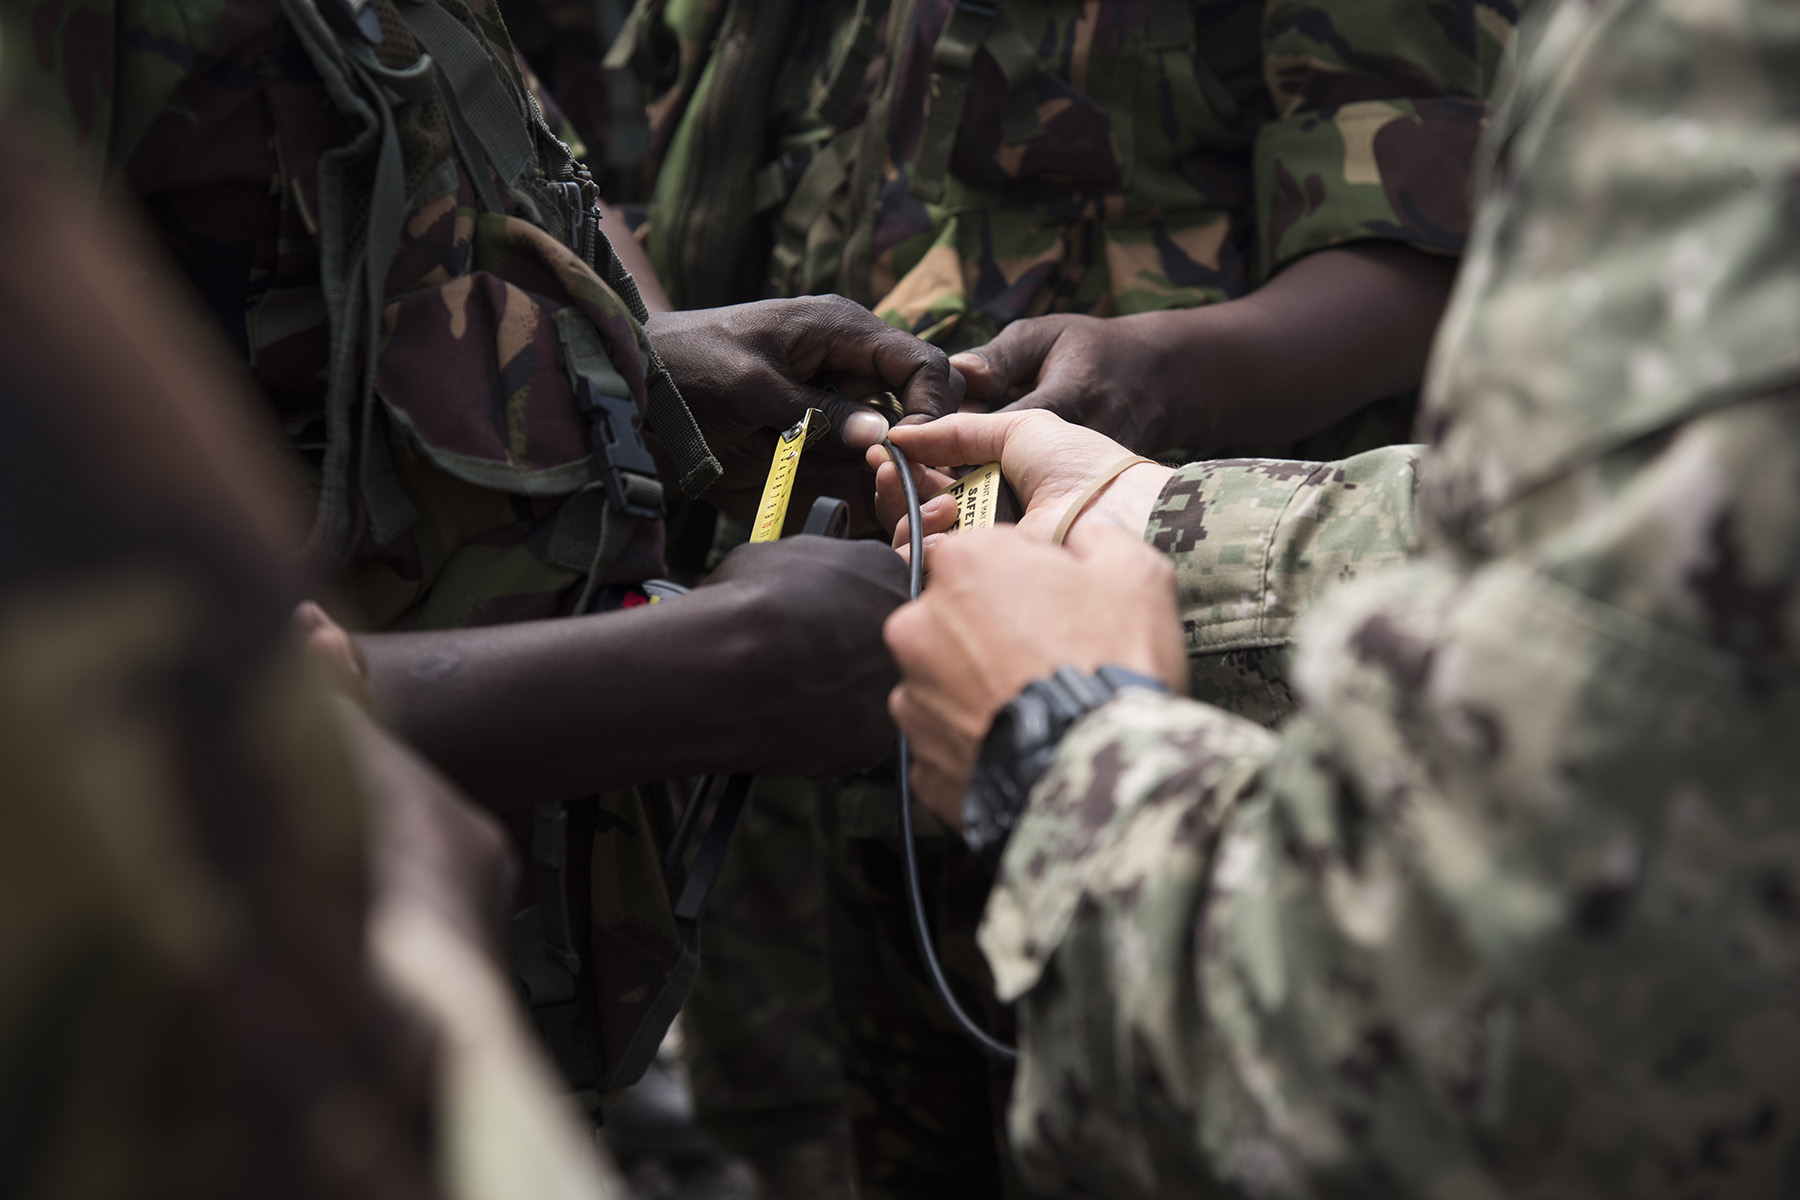 KENYA- Kenya Defense Force combat engineer soldiers and officers measure time fuse for timing calculations during demolition training taught by U.S. Navy Sailors from Task Force Sparta during Deliberate Kindle 2016, Sept. 19, at a training center in Kenya. Deliberate Kindle 2016 is taught by U.S. Navy explosive ordnance disposal technicians and a dive independent duty corpsman assigned to Combined Joint Task Force-Horn of Africa.  It is a four-week Humanitarian Mine Action course designed to provide training in countering improvised explosive devices and unexploded ordnance, medical, and train-the-trainer skills to approximately 53 KDF soldiers, in preparation for future deployments with the African Union Mission in Somalia. (U.S. Air Force photo by Staff Sgt. Tiffany DeNault)